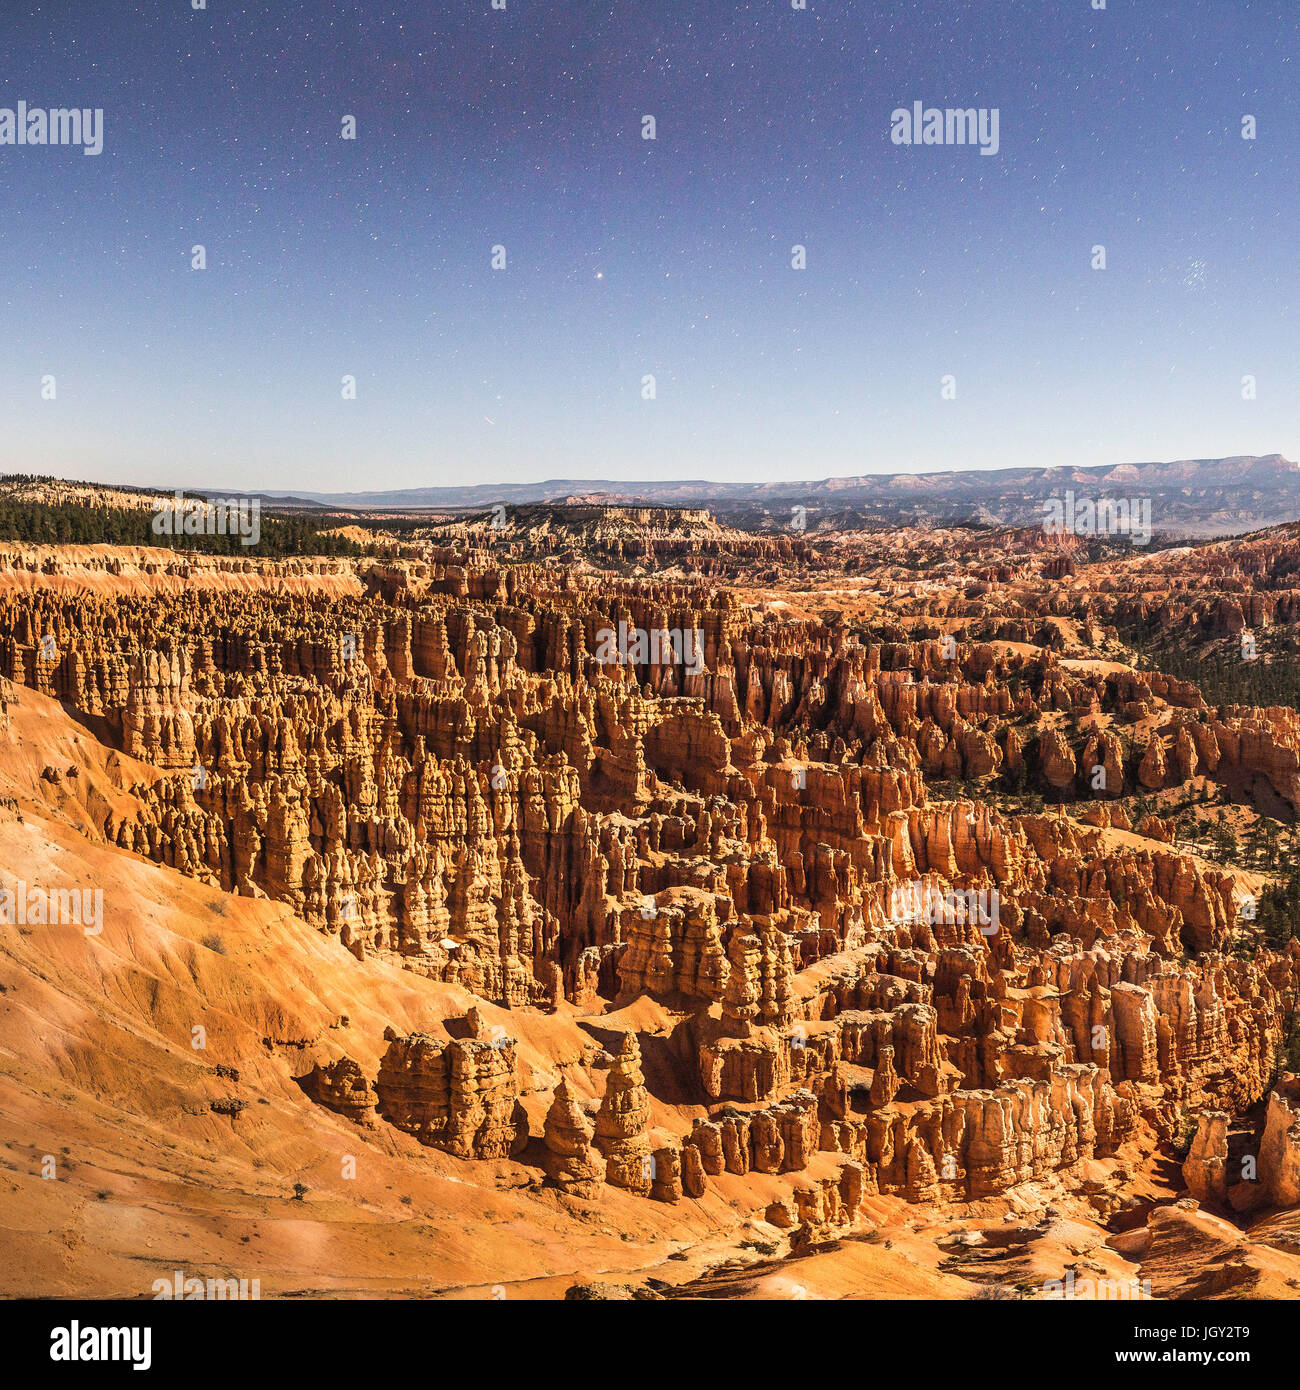 Bryce Canyon National Park, Bryce Canyon, Utah, USA - Stock Image